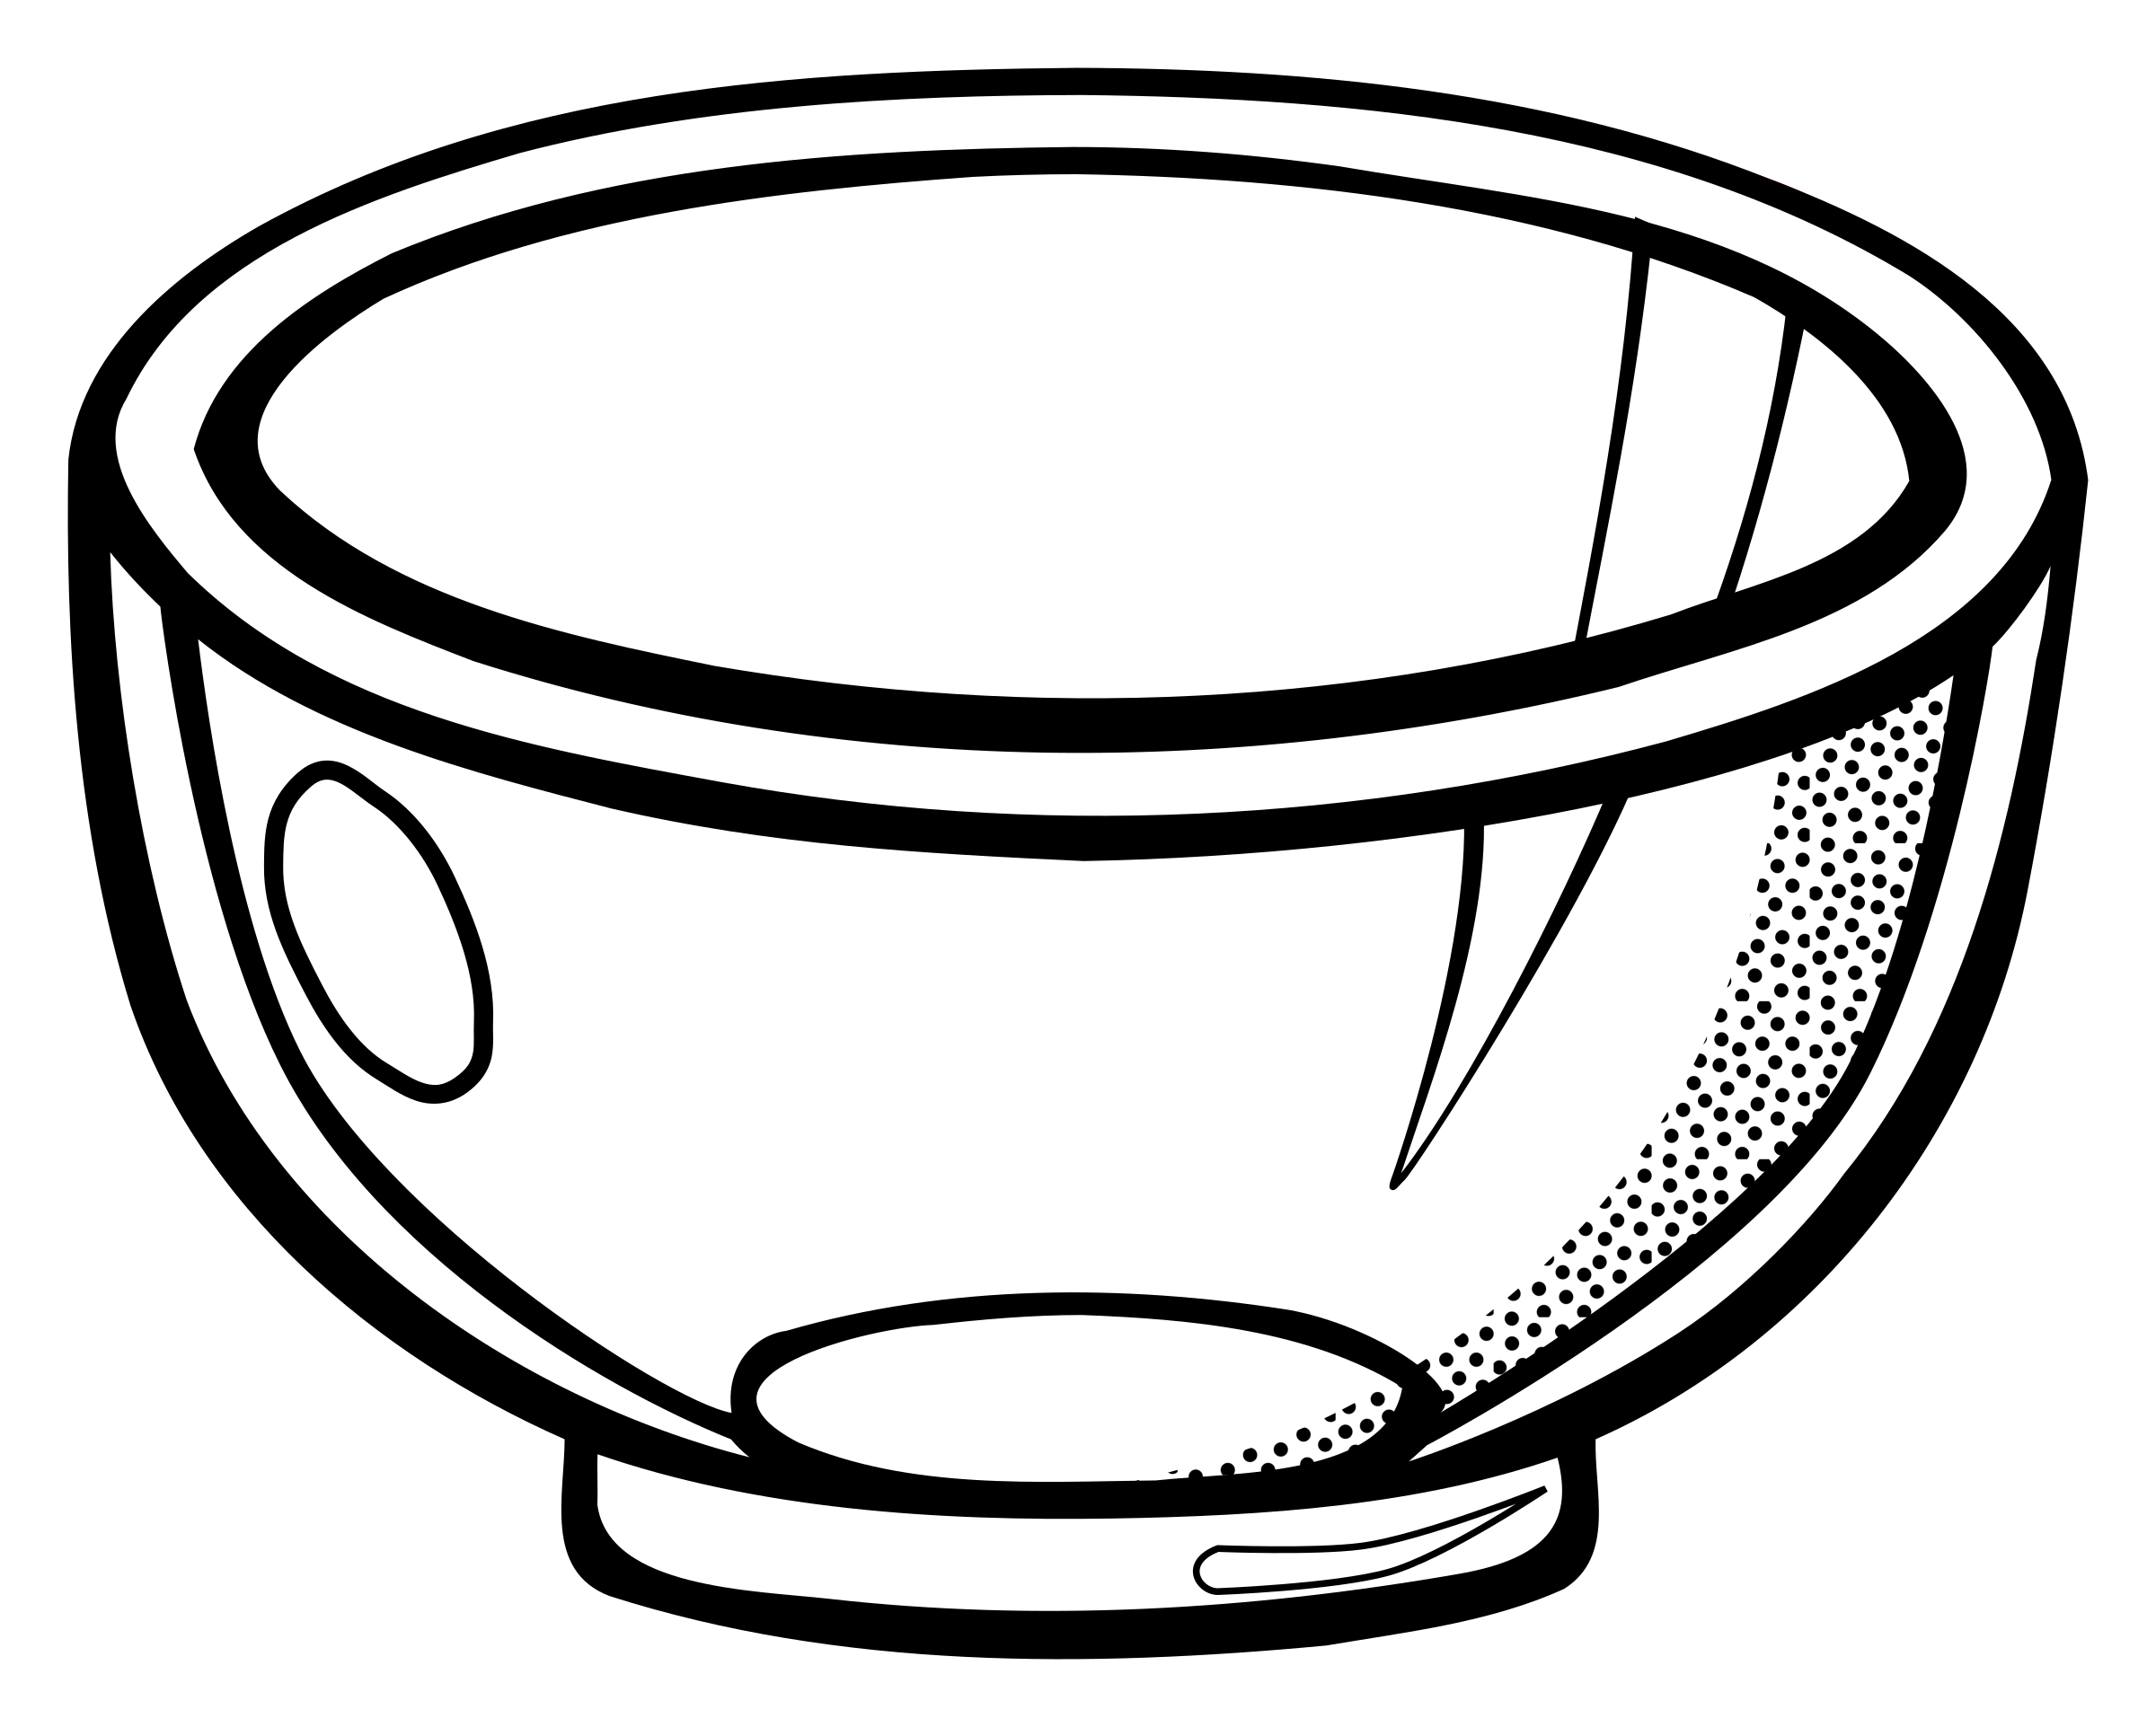 Mixing Bowl Drawing | Free download on ClipArtMag